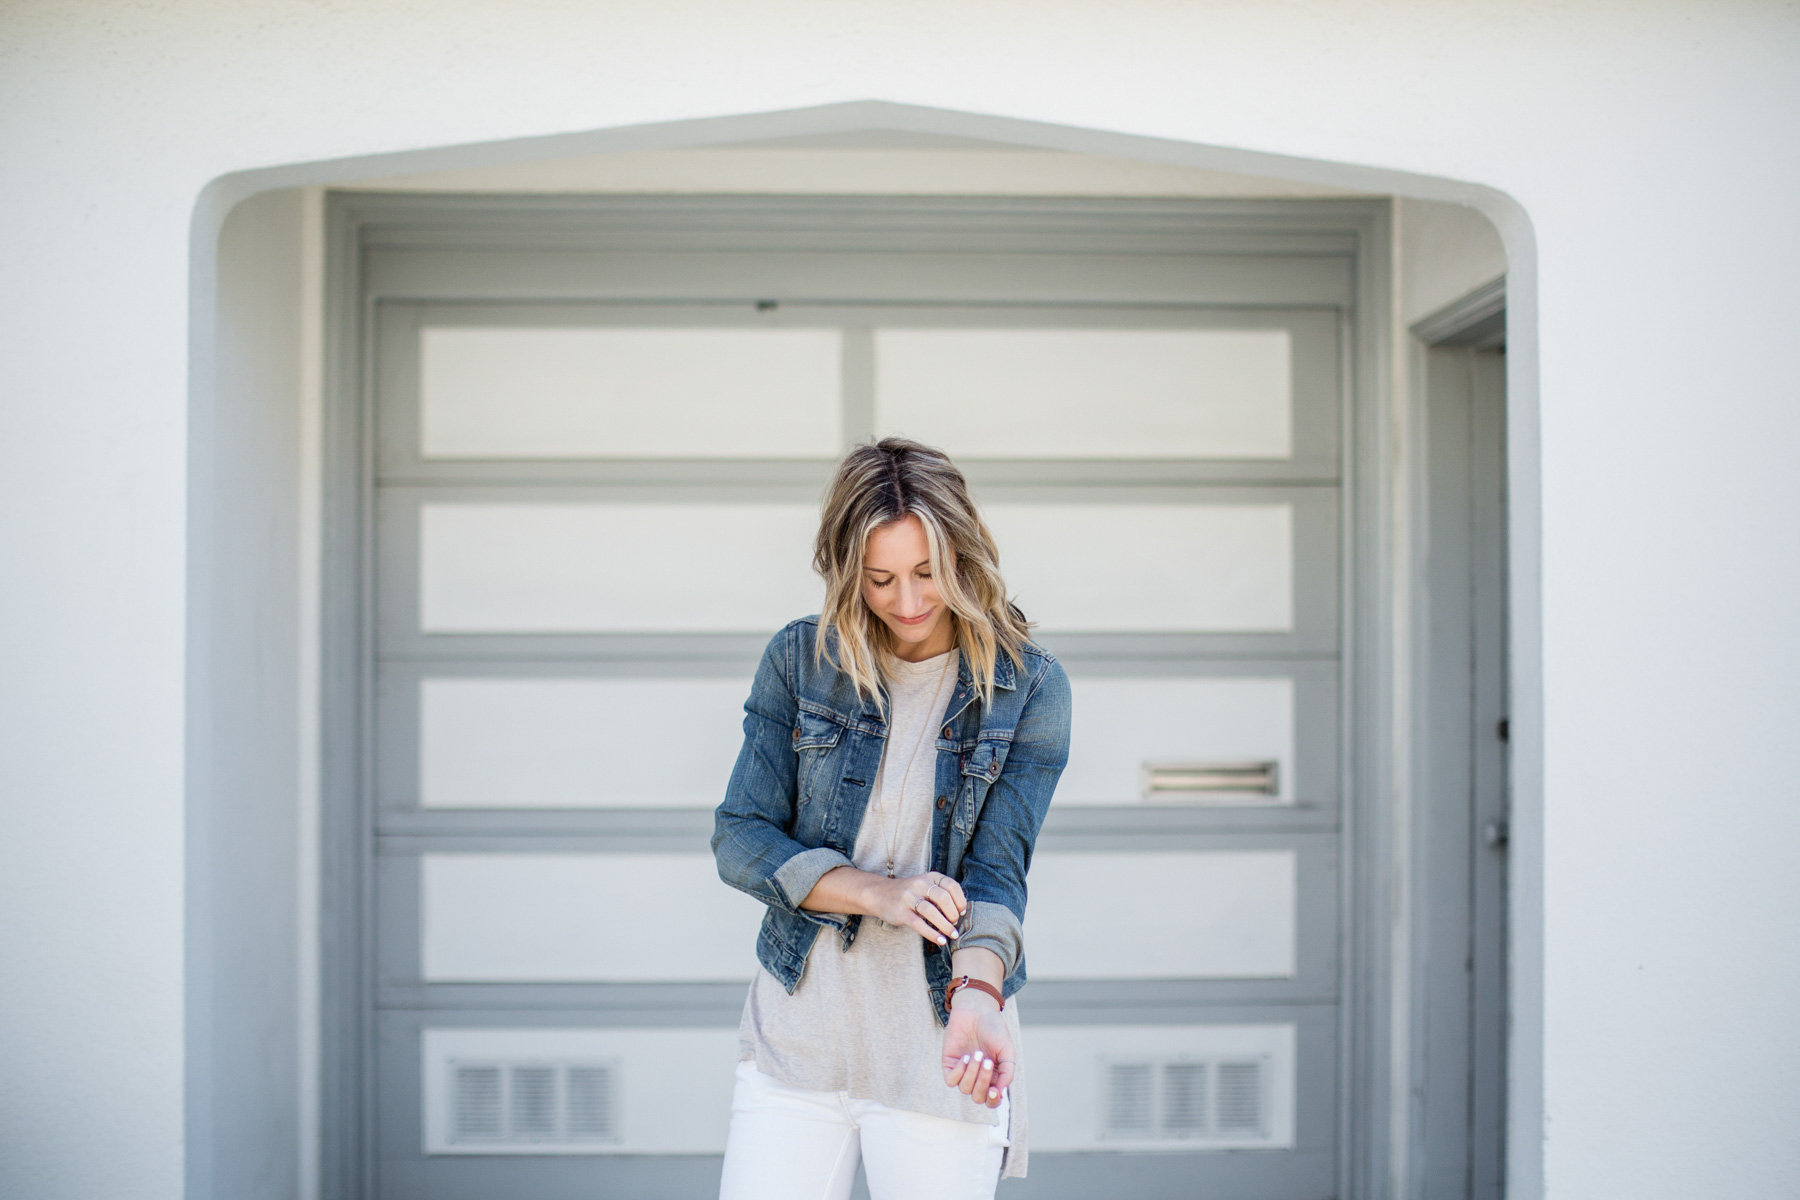 basic outfits with white jeans, tee shirt, and denim jacket